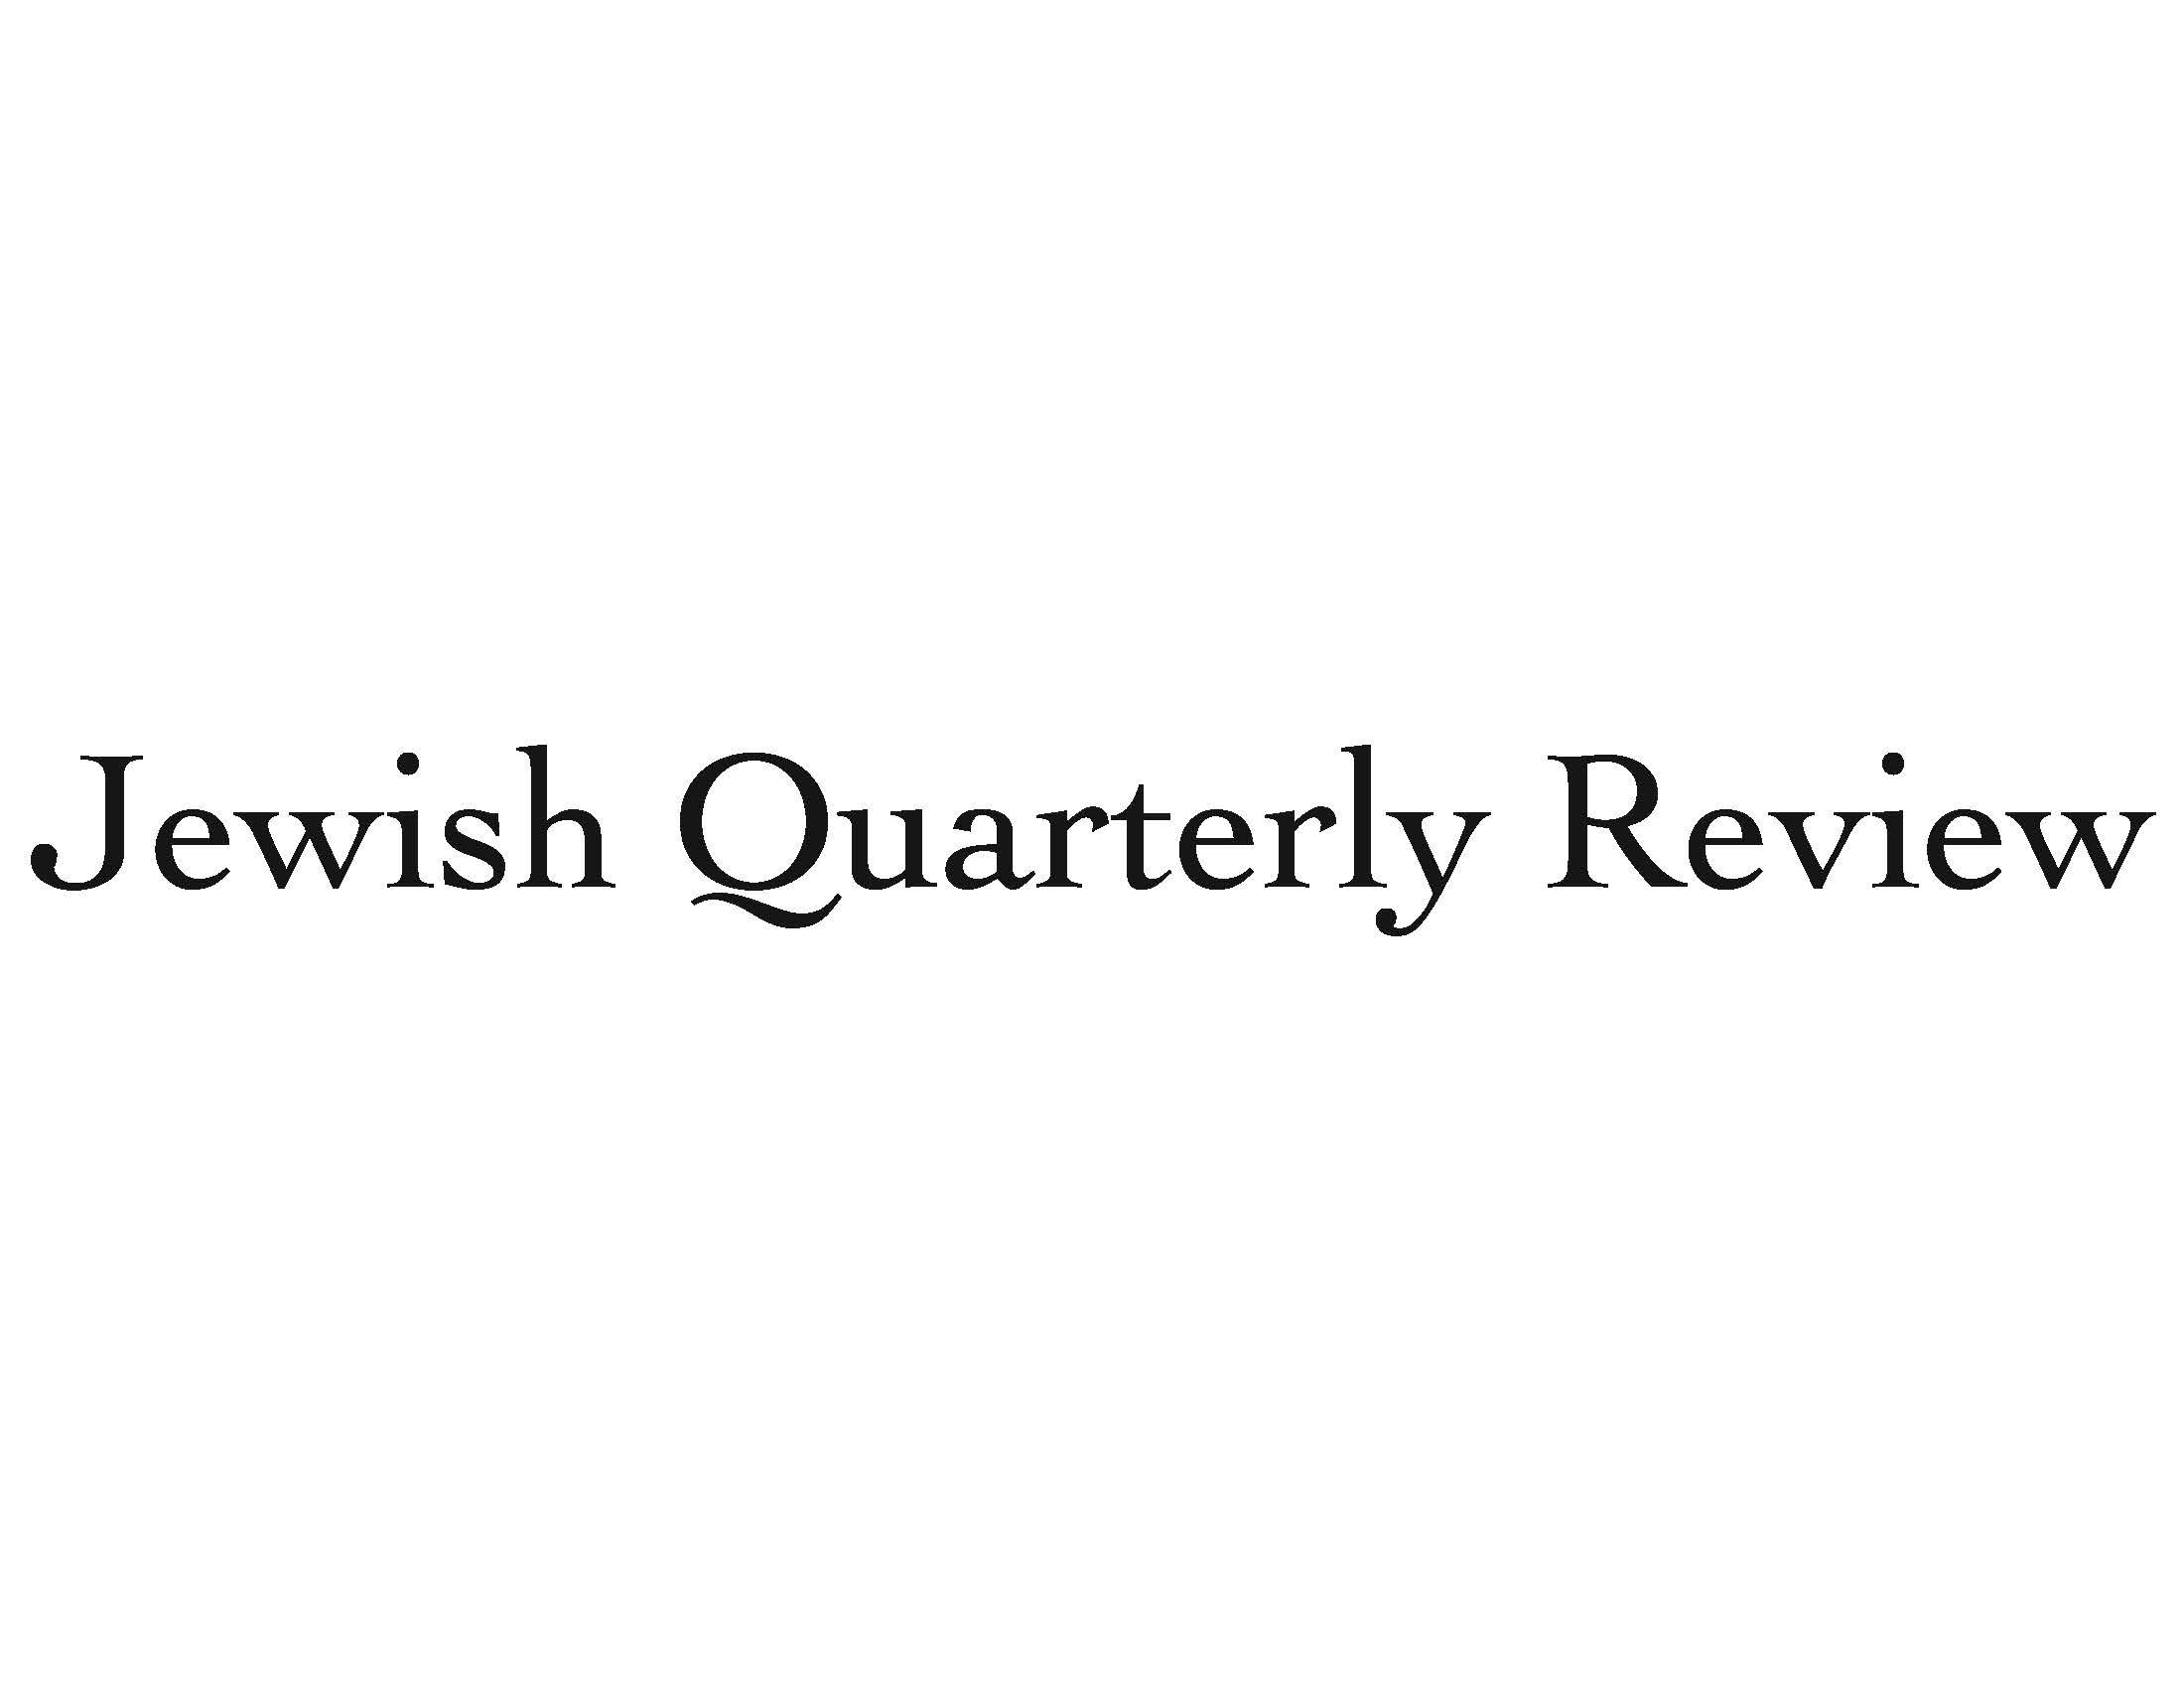 New Issue of the Jewish Quarterly Review: Spring 2019